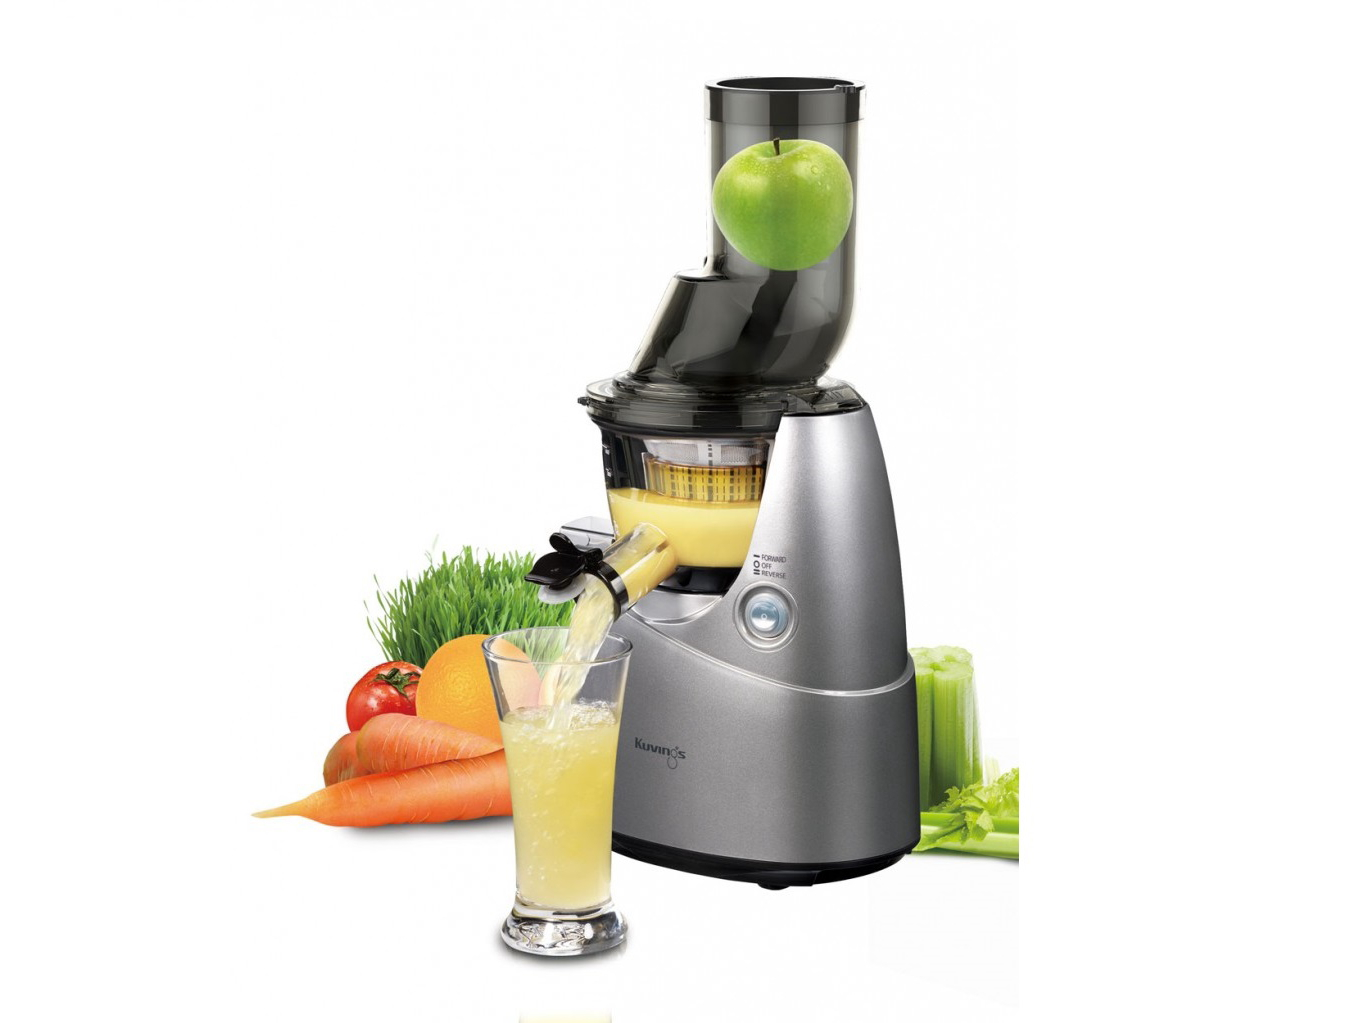 Slow Juicer Kuvings Test : Apfel-Zimt-Sauce auf gedrehten Bandnudeln ? The vegetarian Diaries